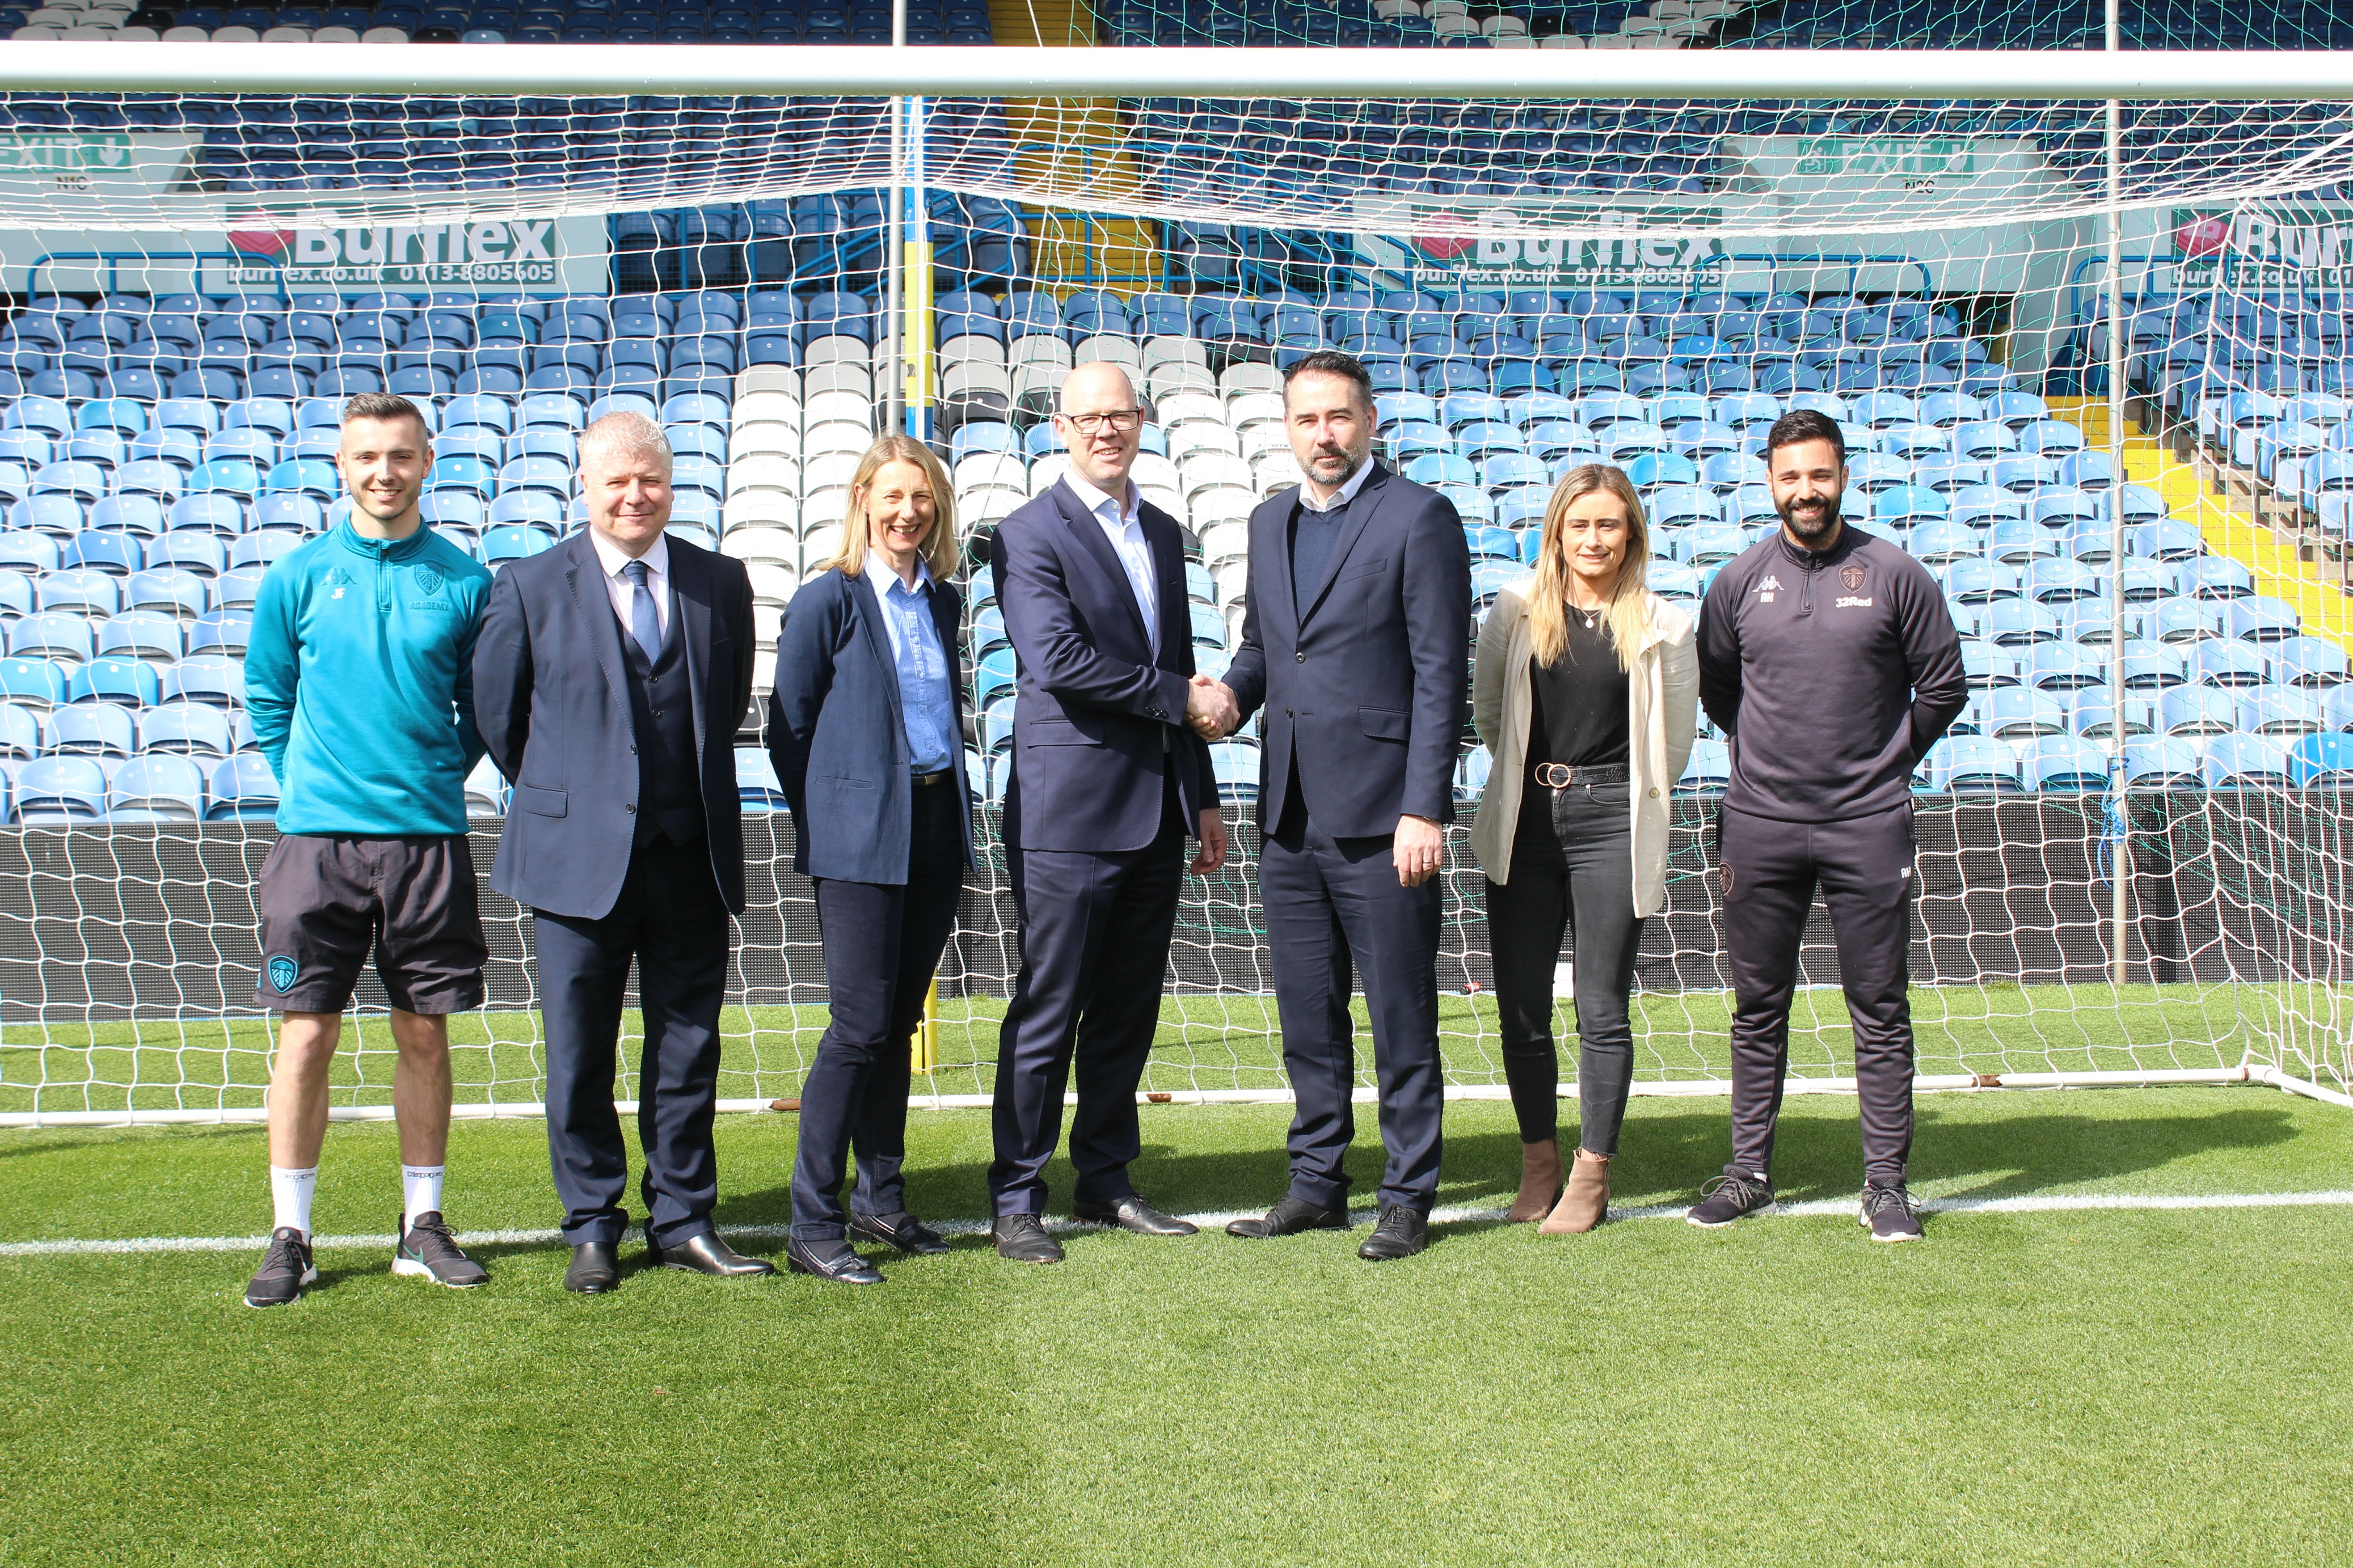 Leeds Beckett University provide coaching and nutrition support for Leeds United FC